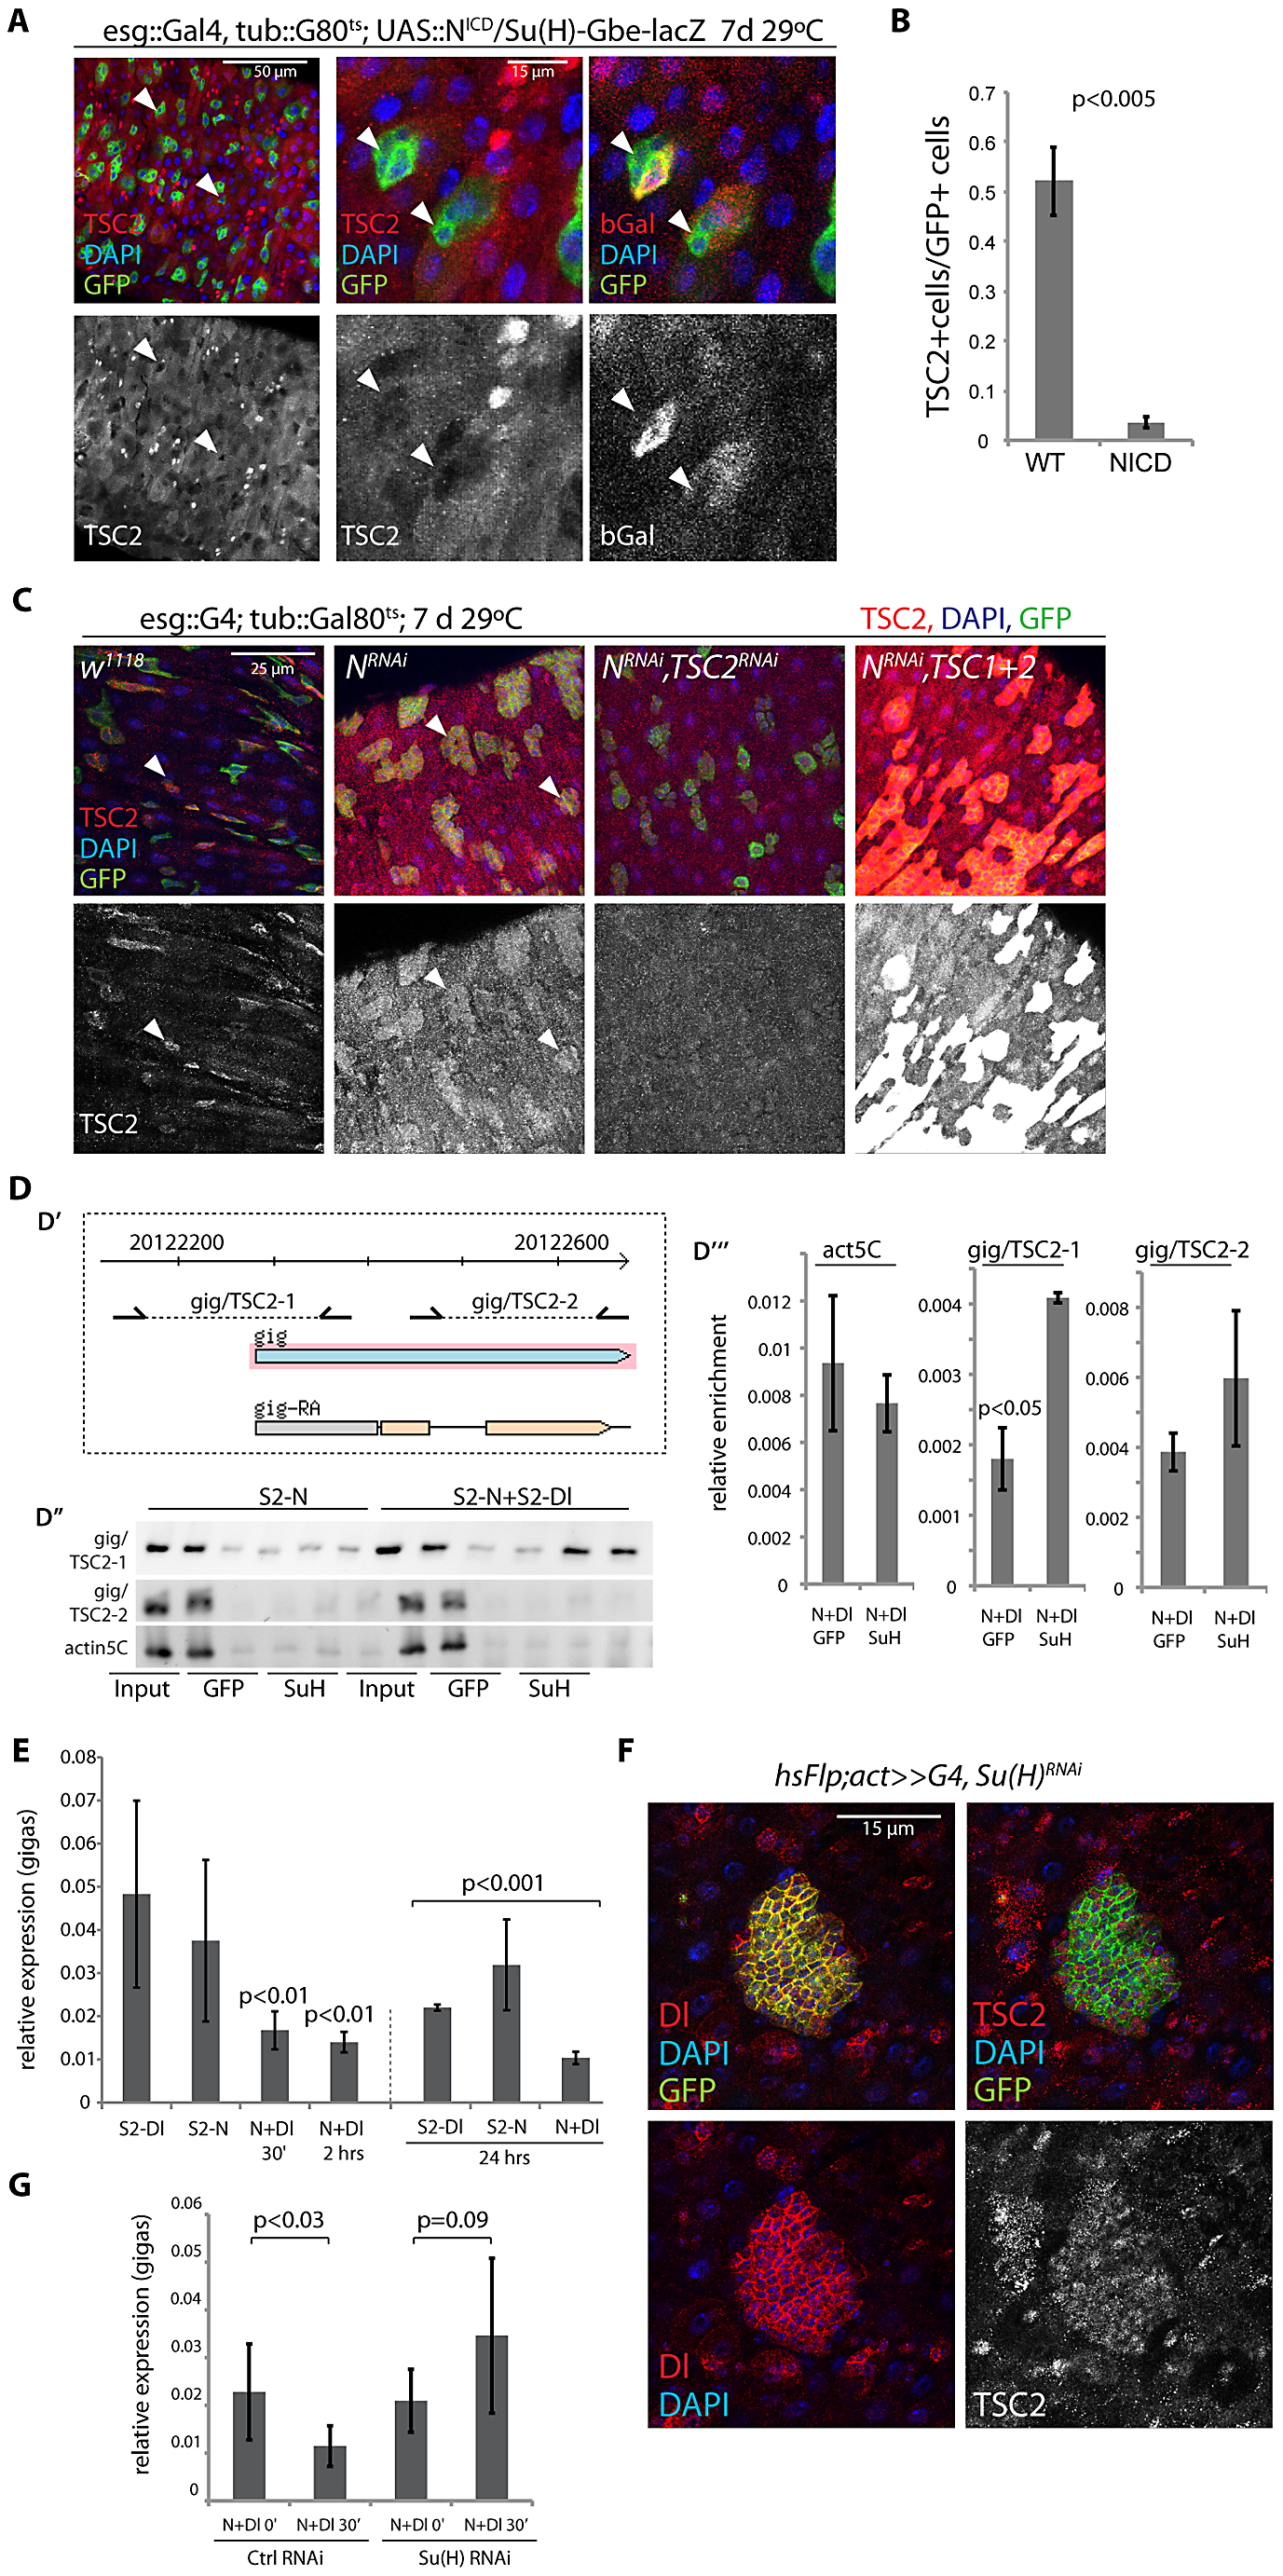 Suppression of TSC2 expression in response to Notch activation in EBs.